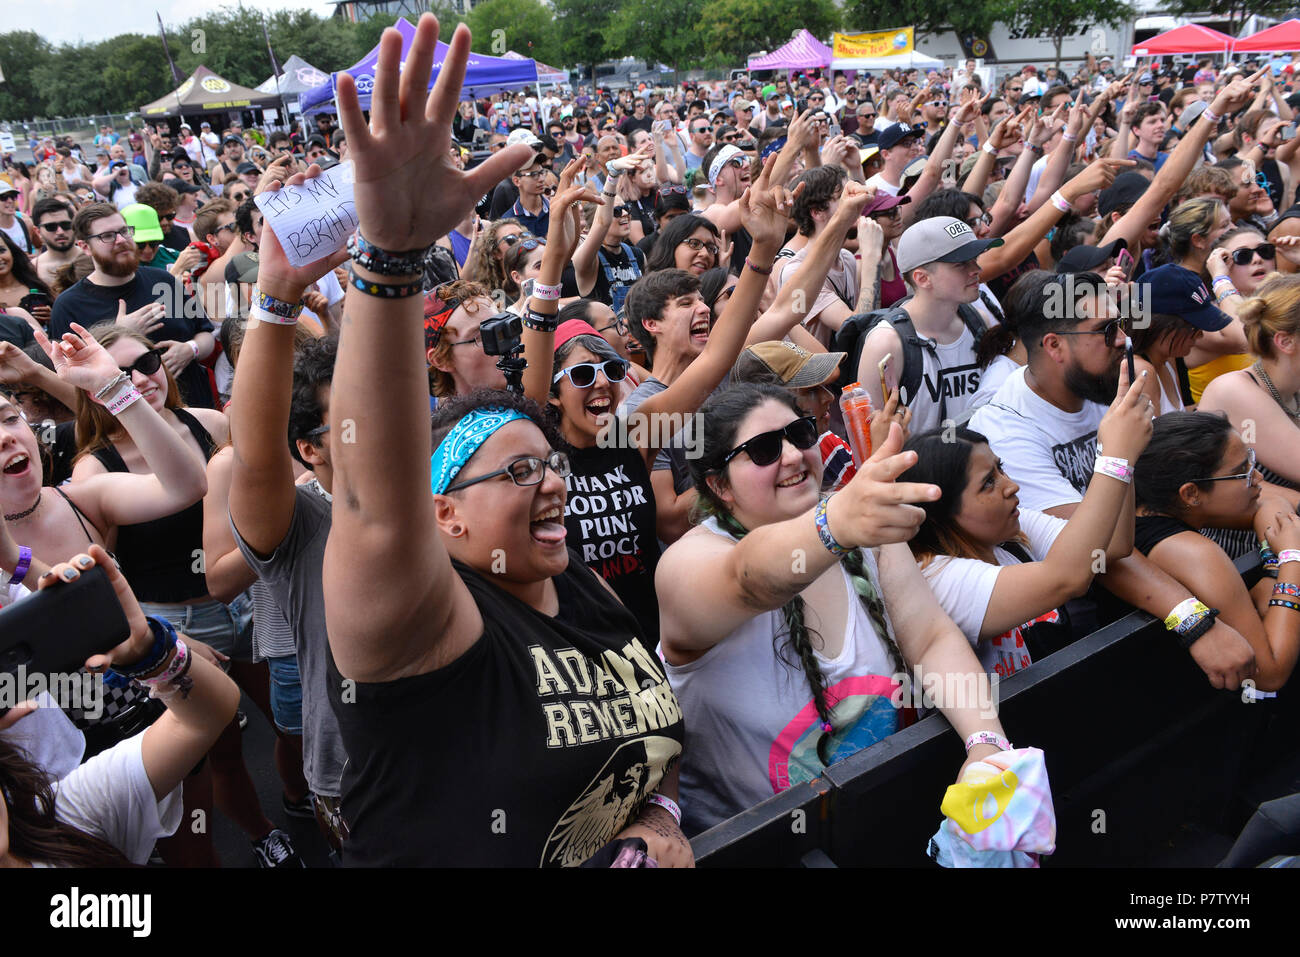 San Antonio, USA. 7th July 2018. Concert-goers cheer during the Vans Warped Tour June 7, 2018 in San Antonio, Texas. Credit: Robin Jerstad/Alamy Live News - Stock Image